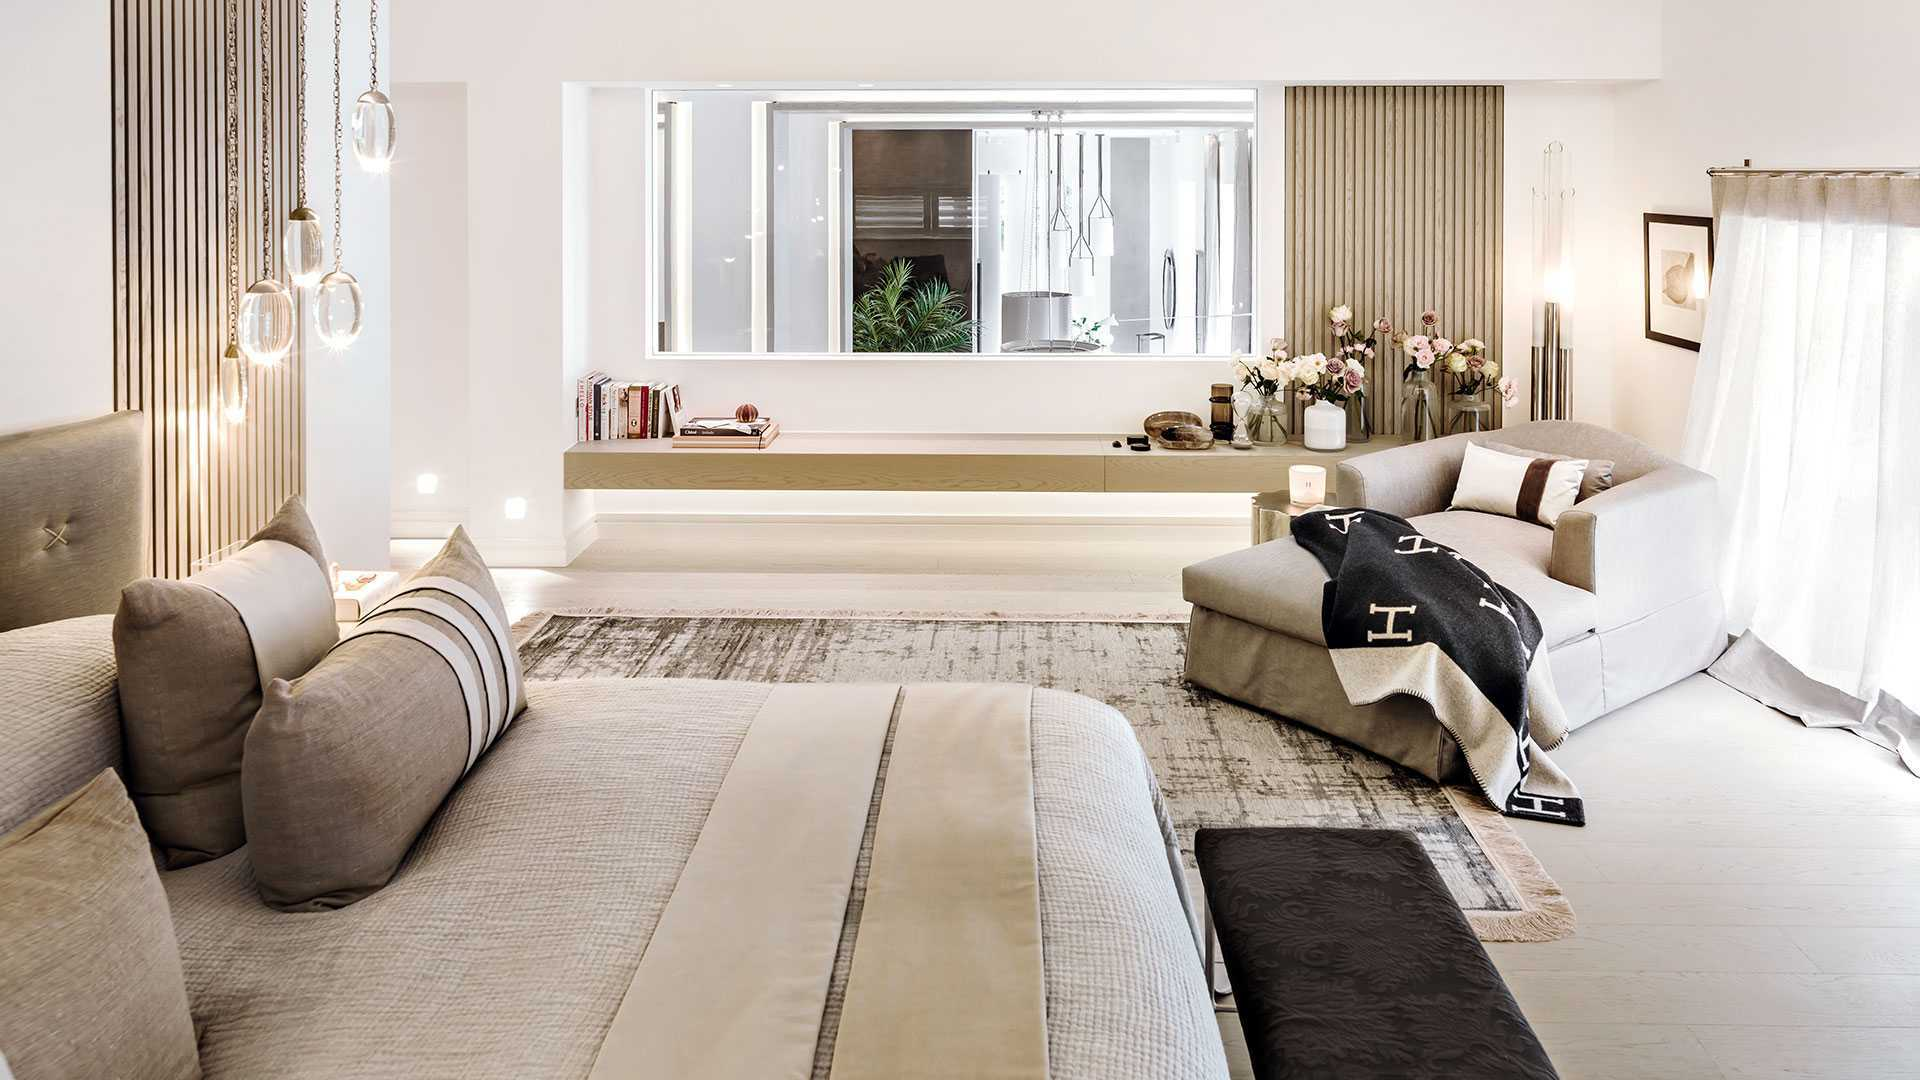 Inspiring Master Bedroom Ideas By Kelly Hoppen – Master Bedroom Ideas